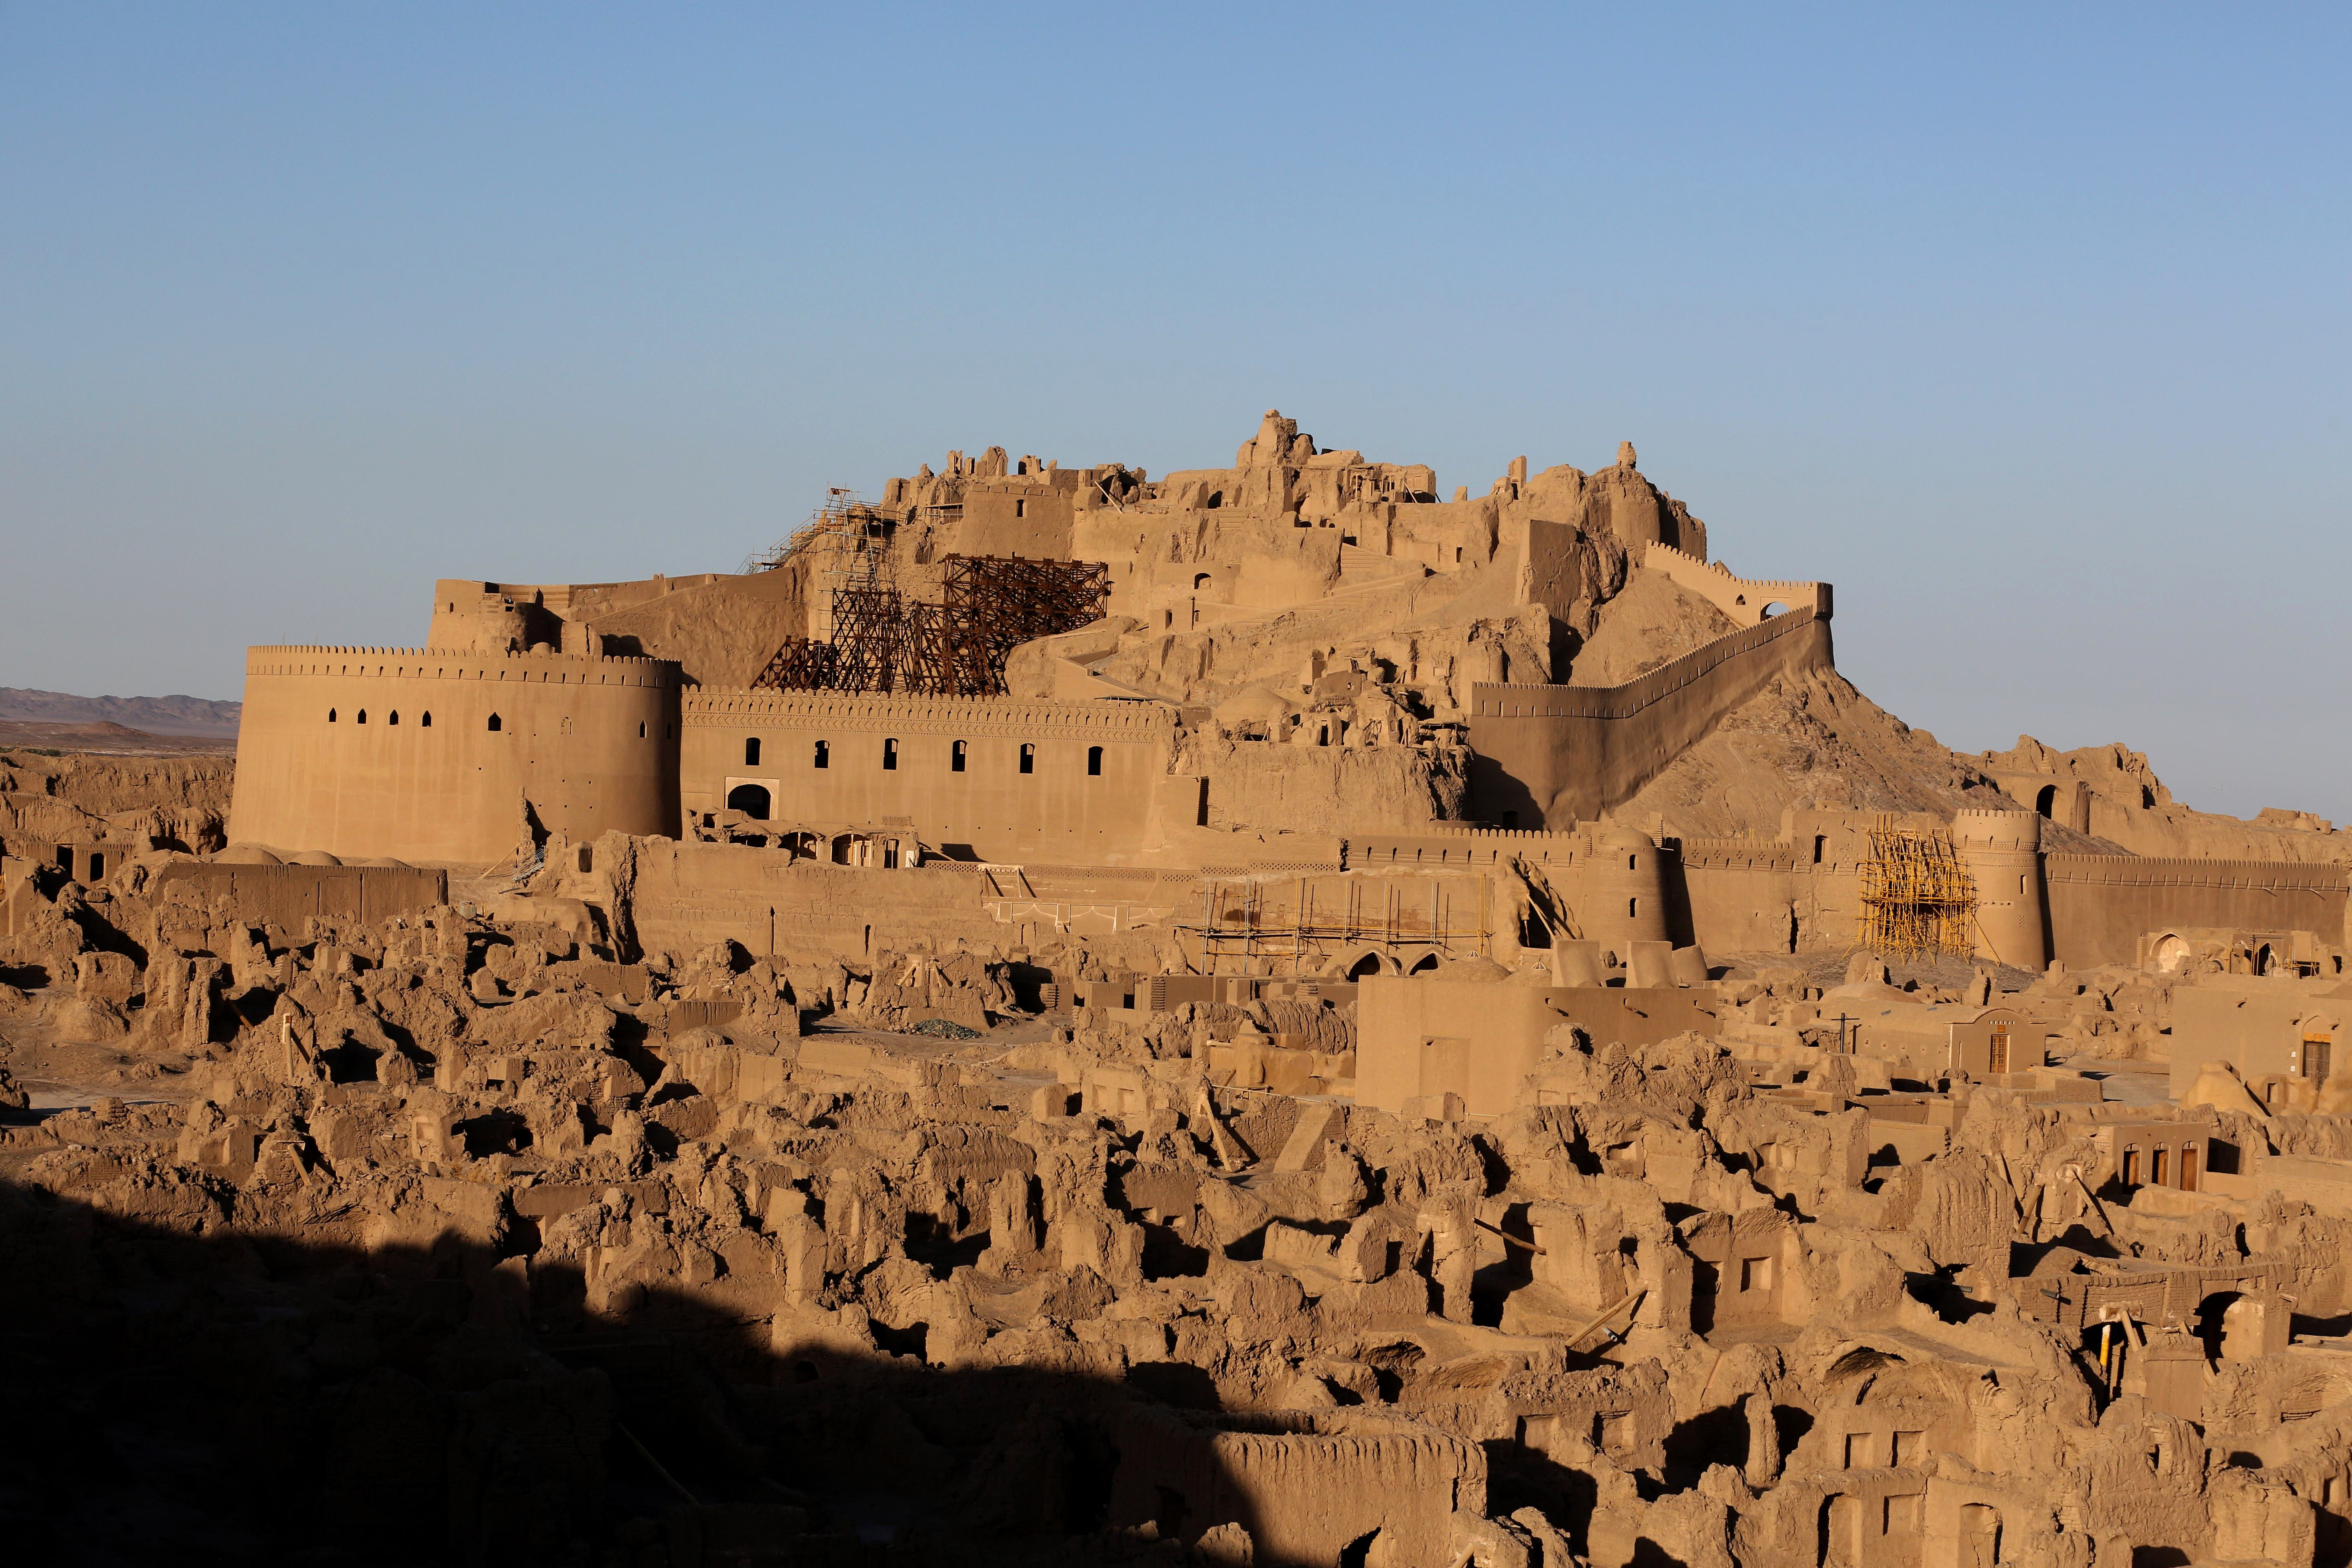 Arg'e Bam, the pre-Islamic desert citadel that was the largest adobe monument in the world made of non-baked clay bricks, is seen on the 10th anniversary of the earthquake in the city of Bam, a thousand kilometers (600 miles) southeast of Tehran, on December 18, 2013.